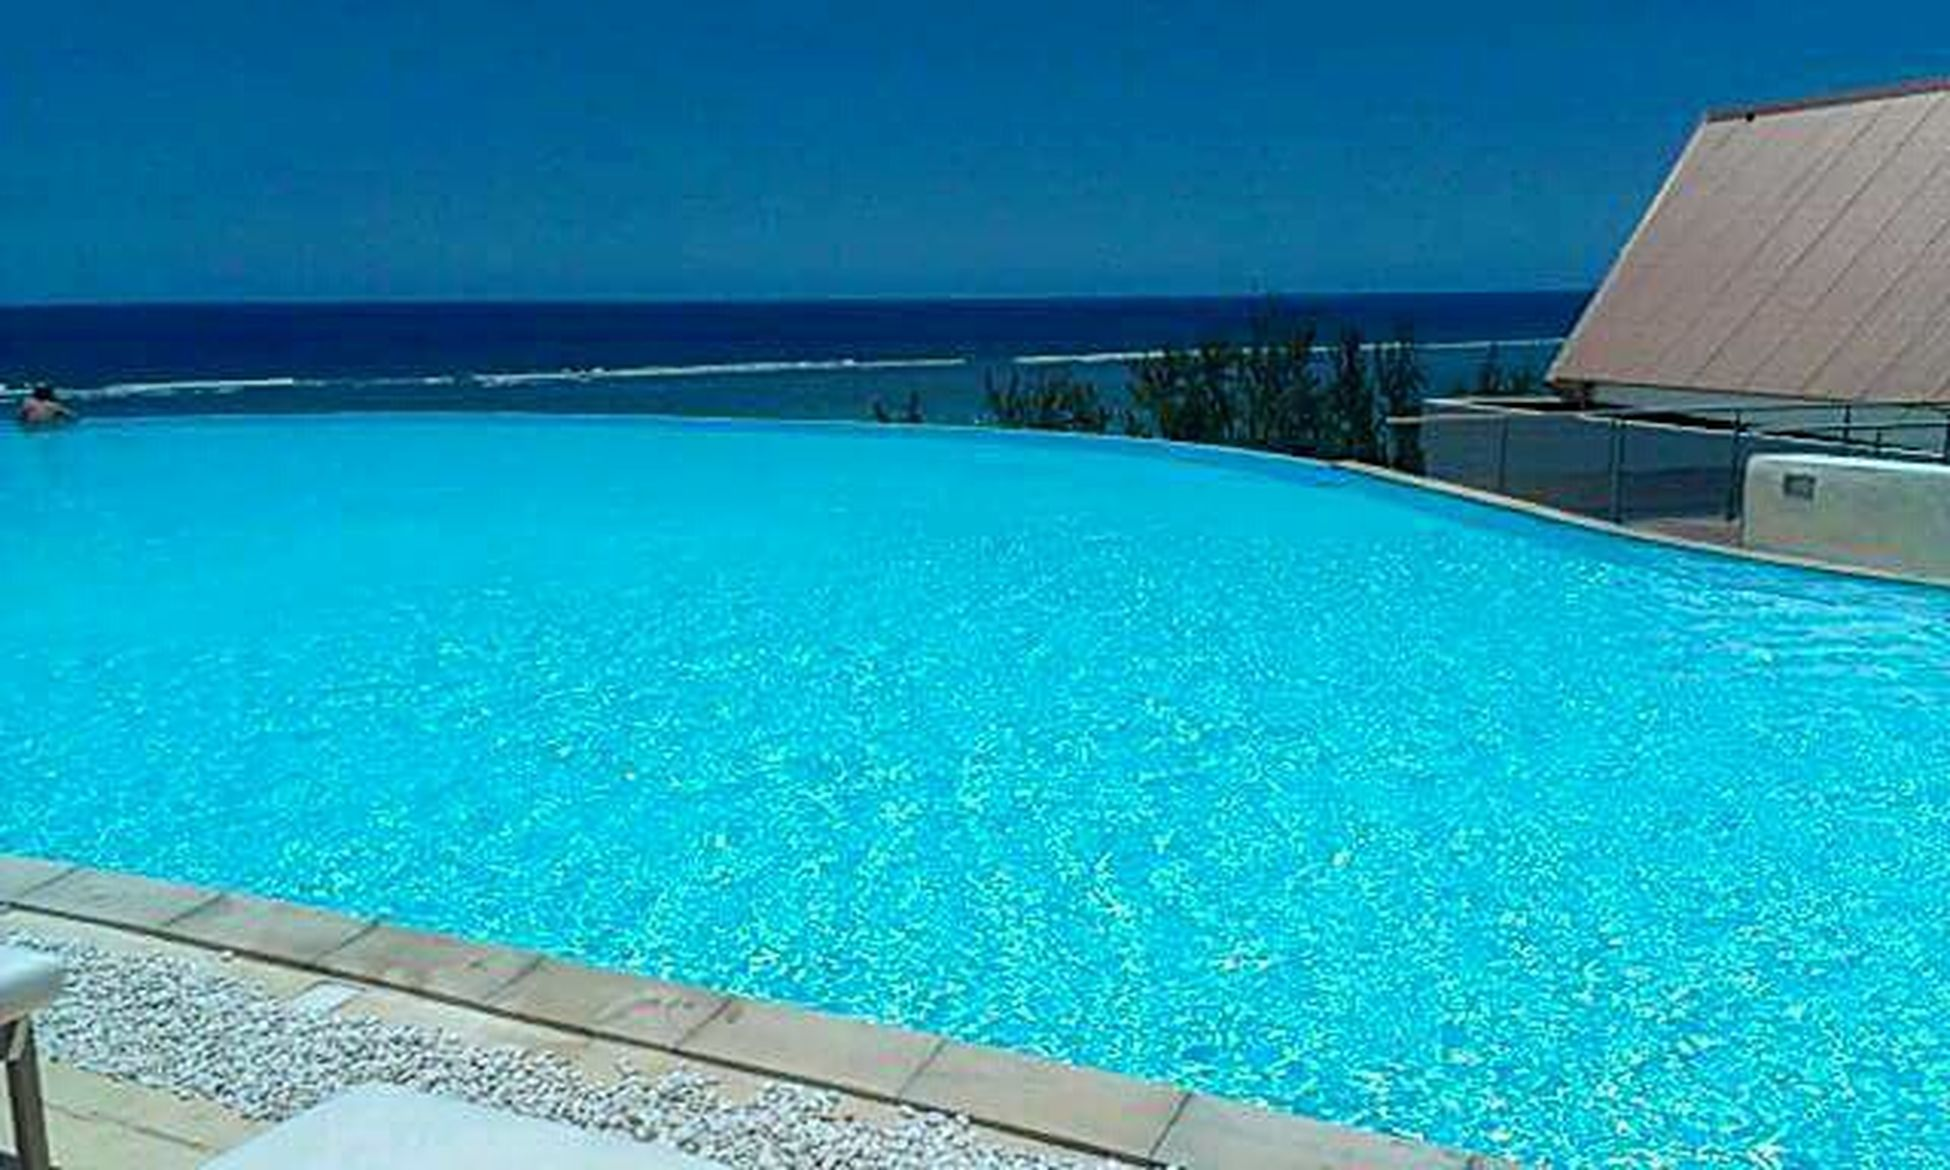 Colour Palette Colour Of Life Swimming Pool Blue Wave Blue Sky Blue Everything Relaxing Check This Out Taking Photos Hello World Akoya Hotel And Spa Reunion Island